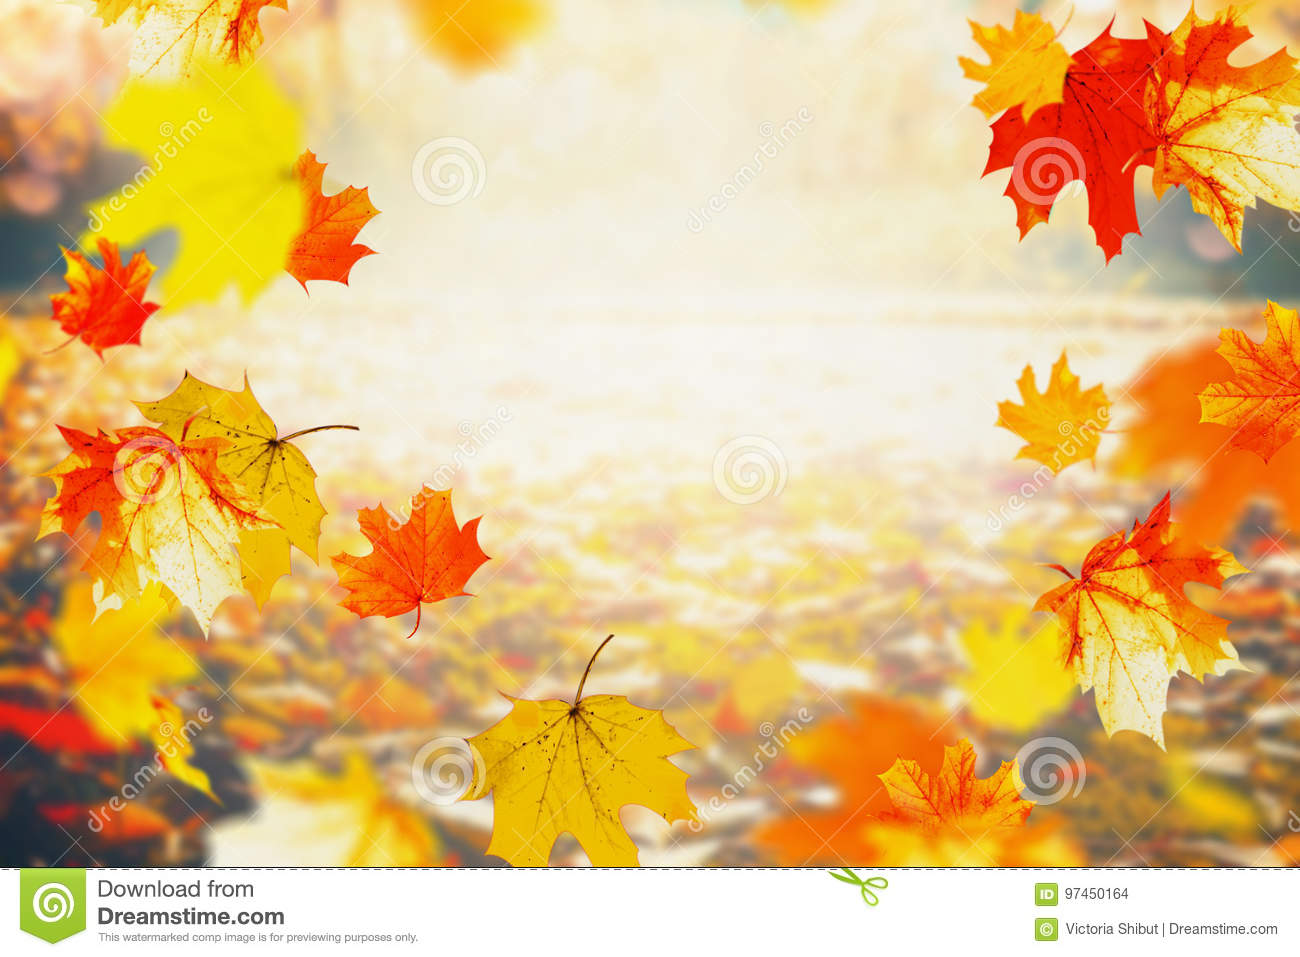 Autumn colorful falling leaves on sunny day, outdoor fall nature background